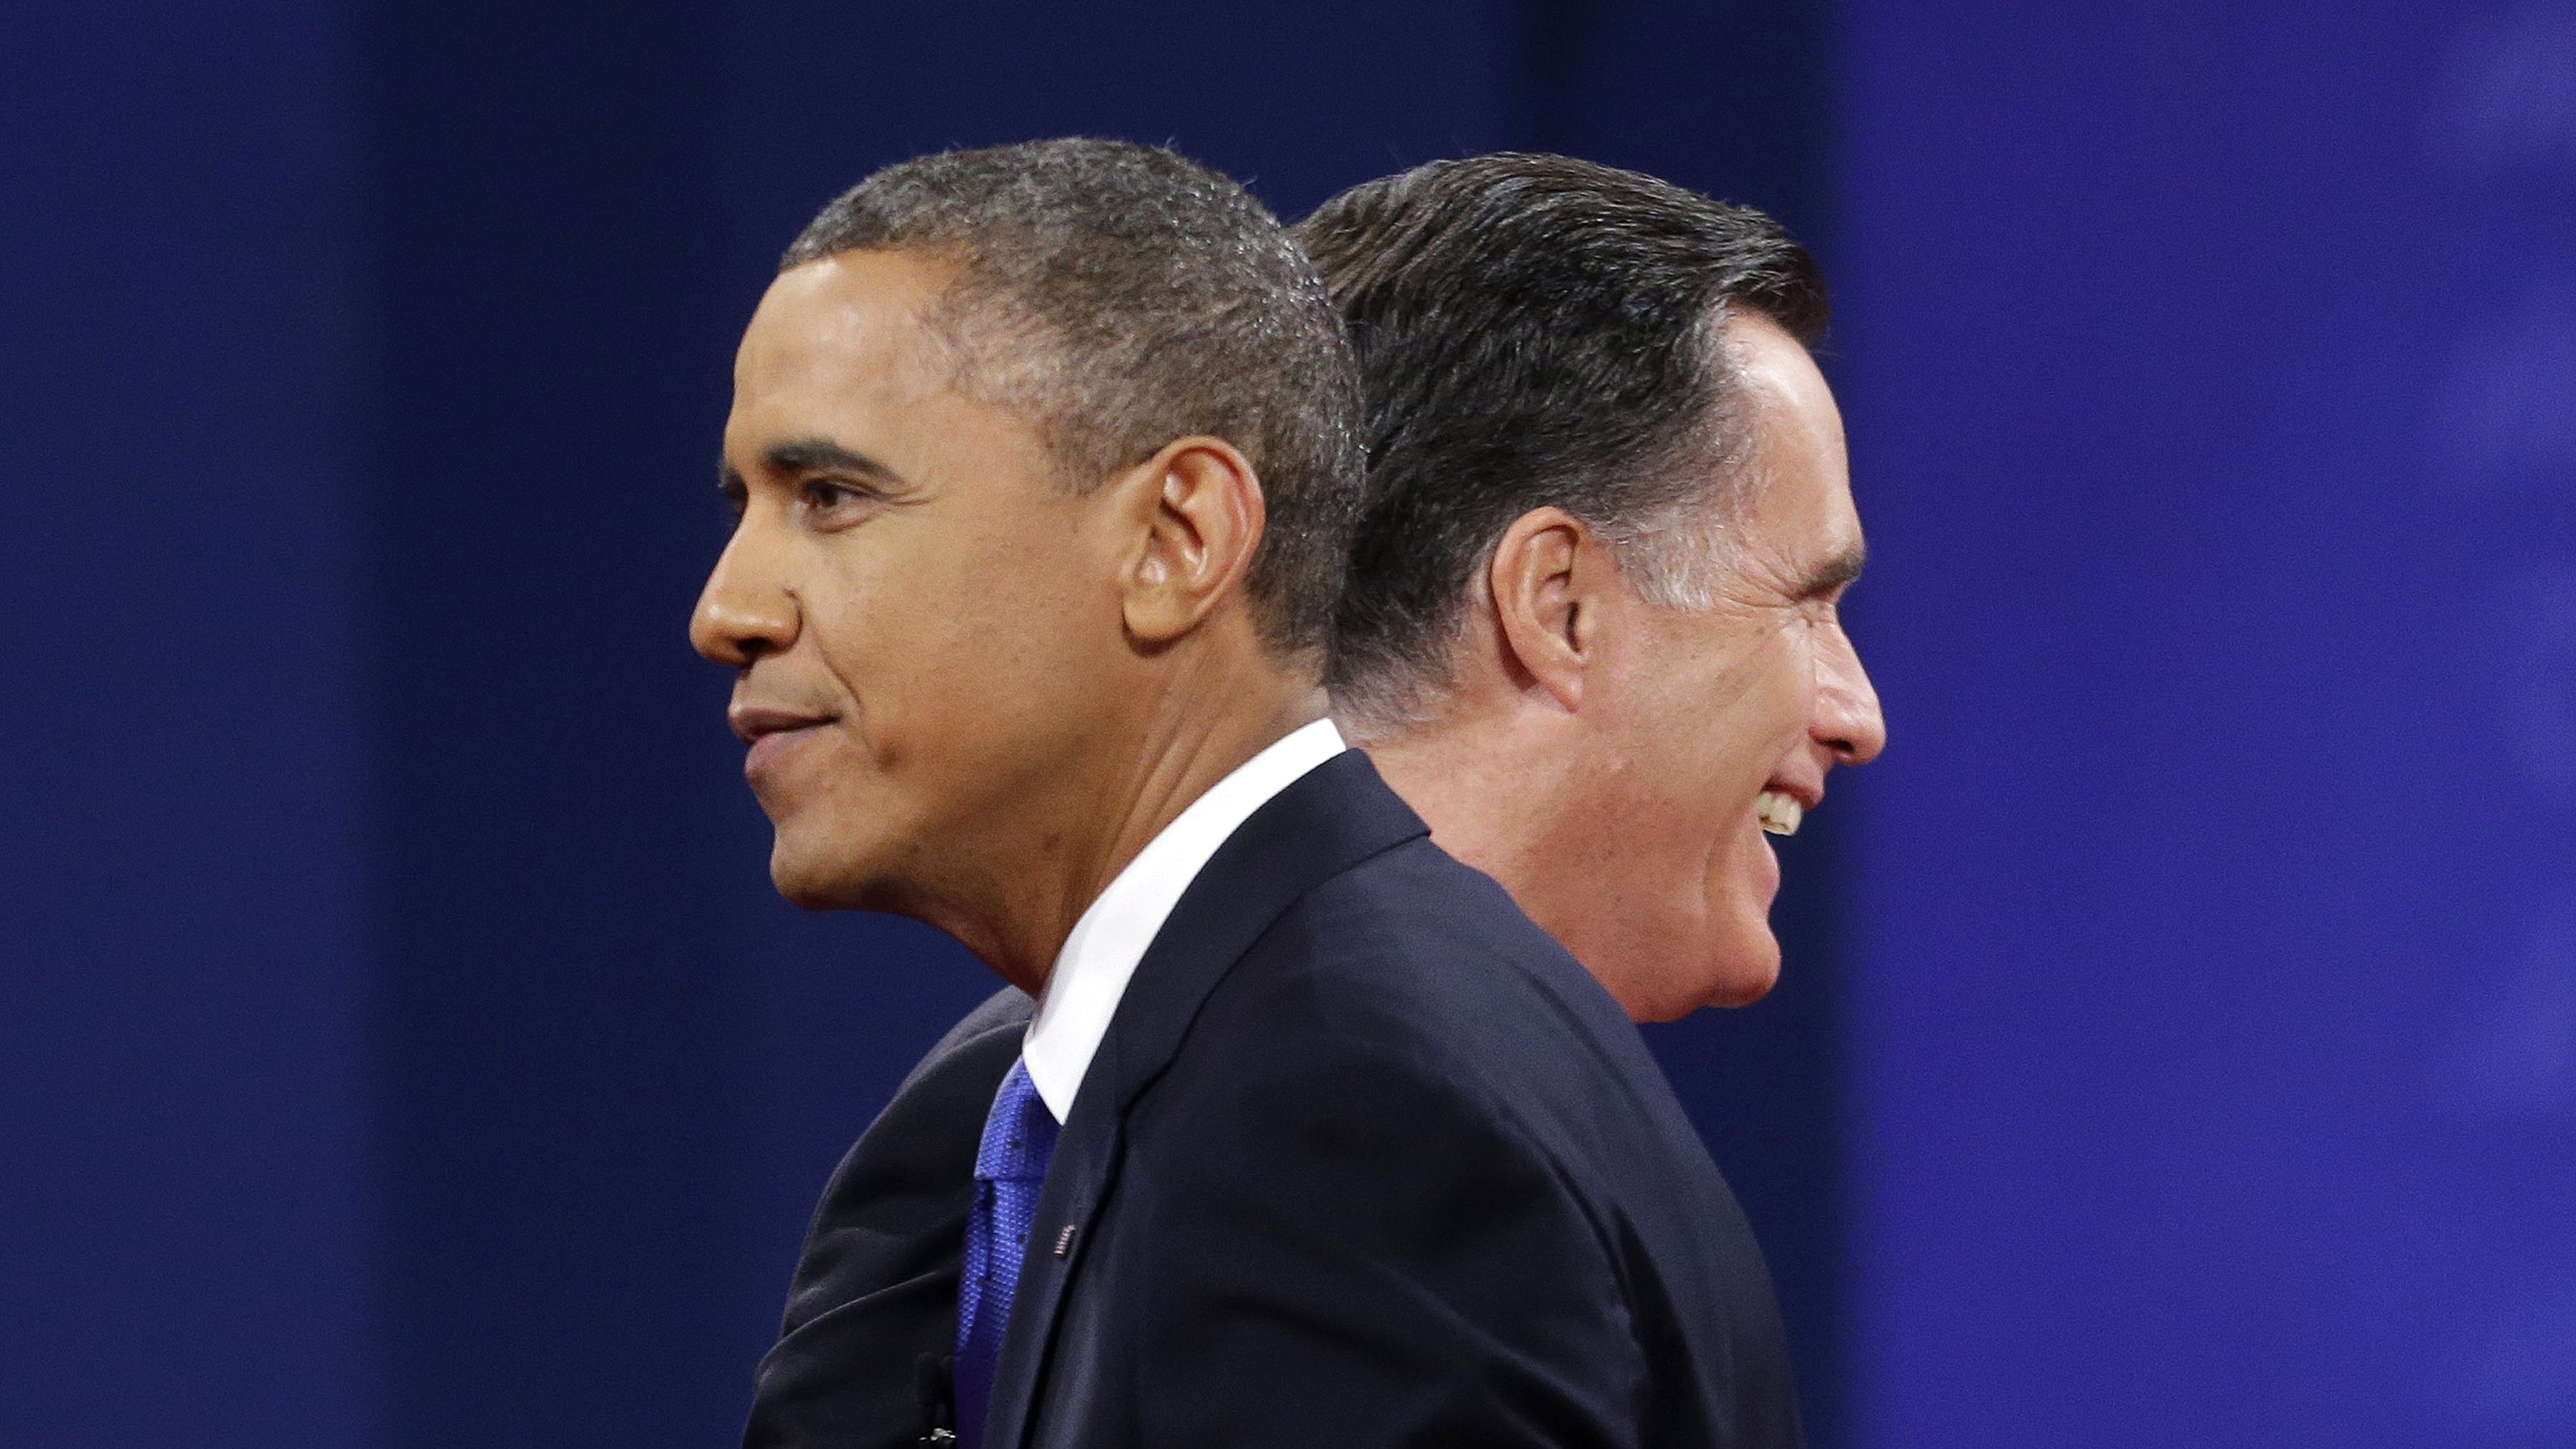 PHOTO: President Barack Obama and Republican presidential candidate, former Massachusetts Gov. Mitt Romney are on stage together at the end of the last debate at Lynn University, Monday, Oct. 22, 2012, in Boca Raton, Fla.